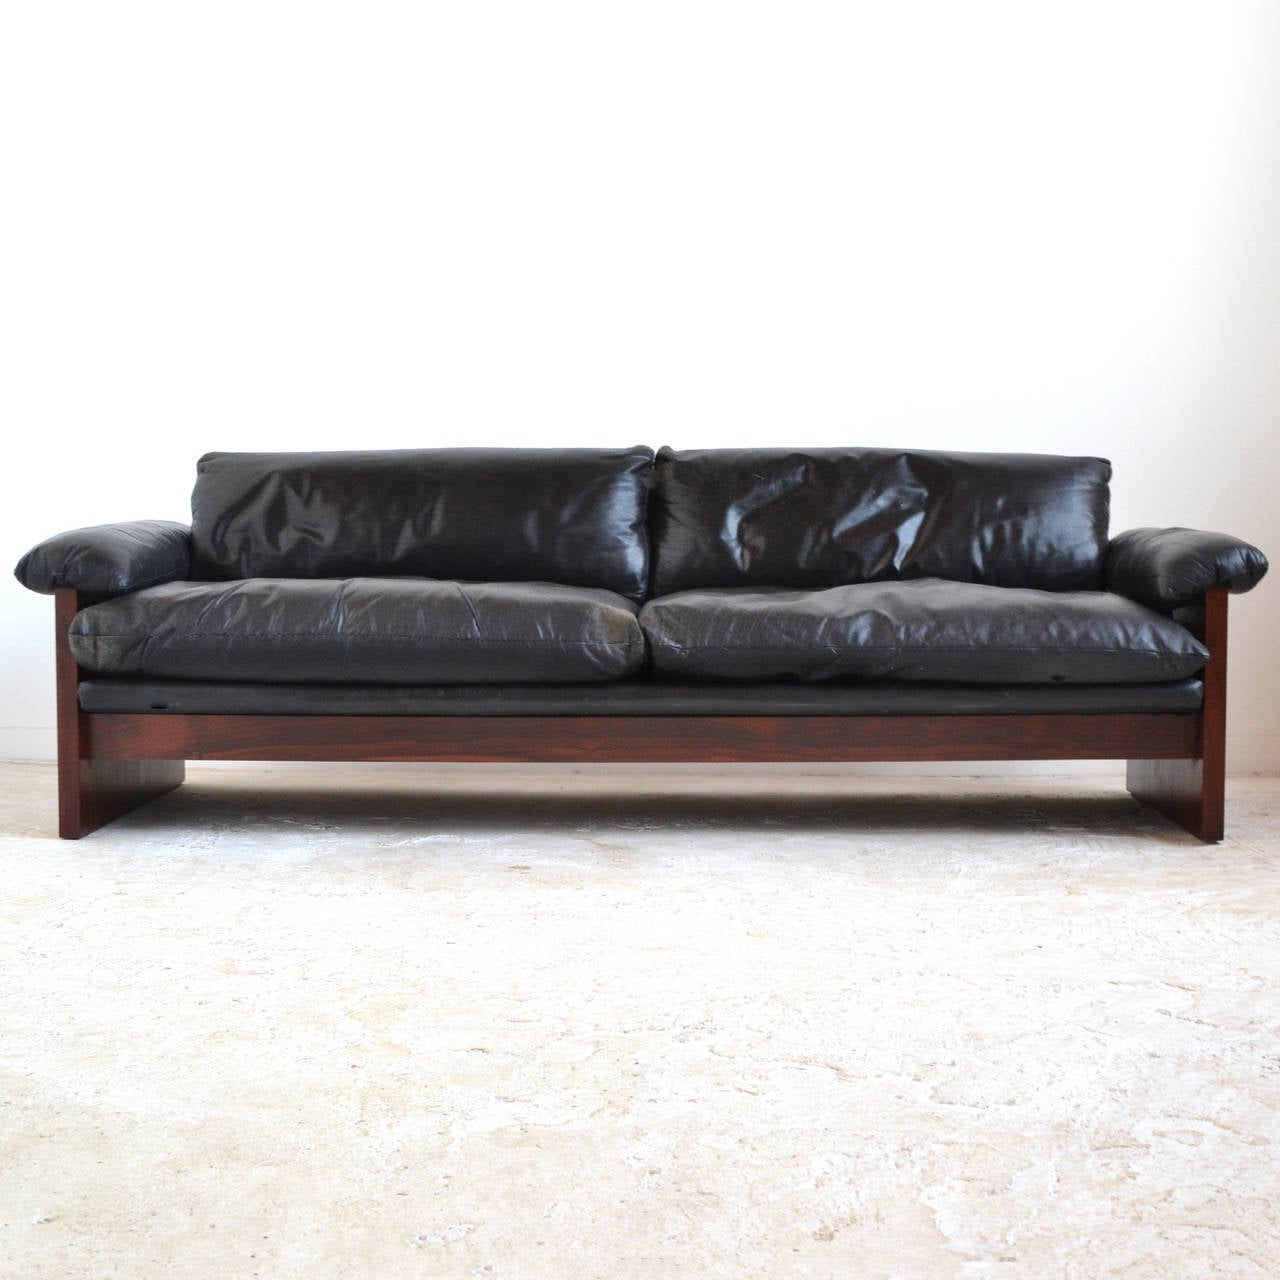 down filled leather sectional sofa sofas cama cruces ofertas rosewood with cushions at 1stdibs